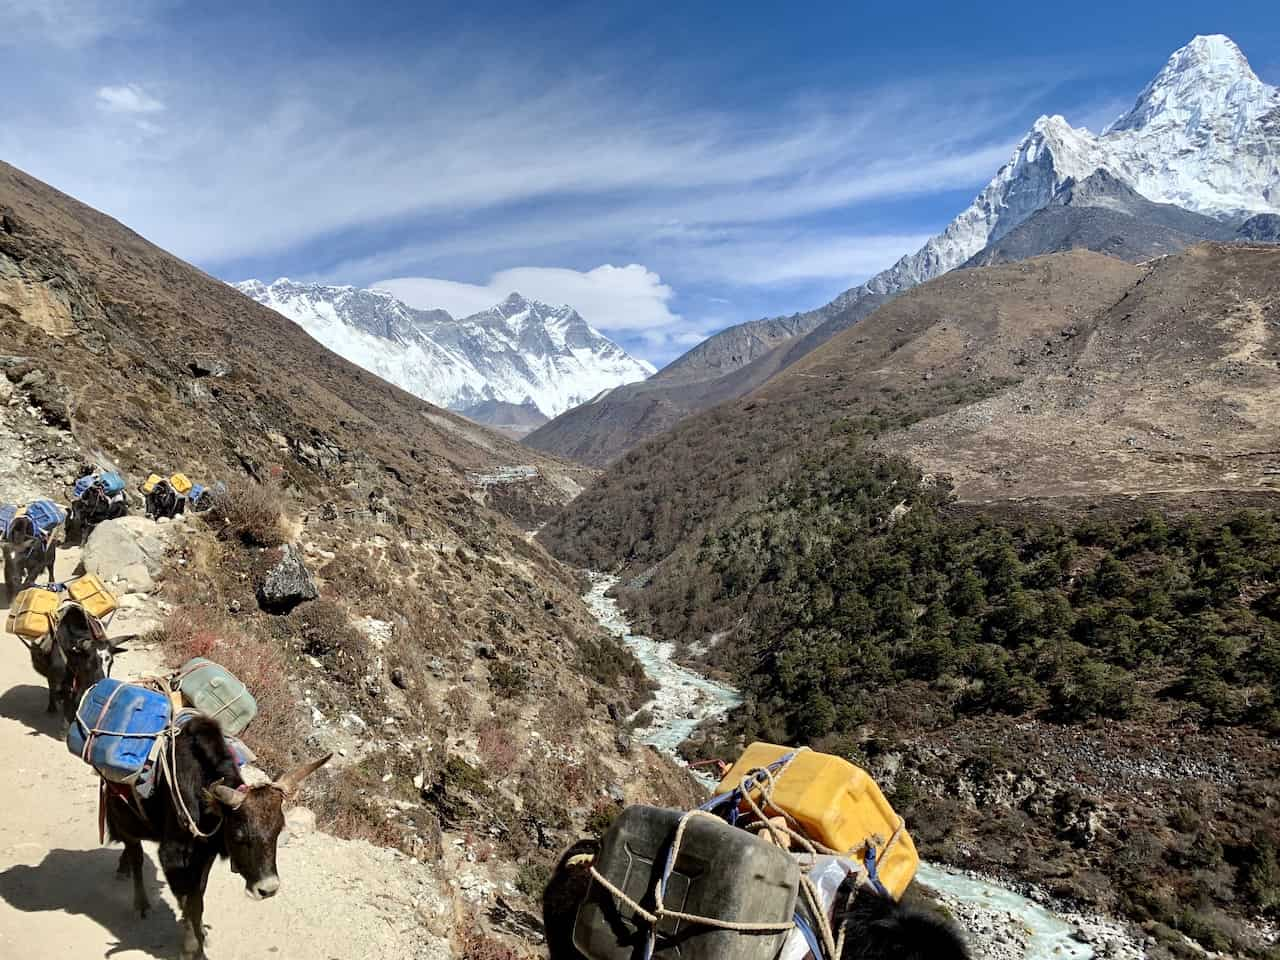 Tengboche Hiking Trail